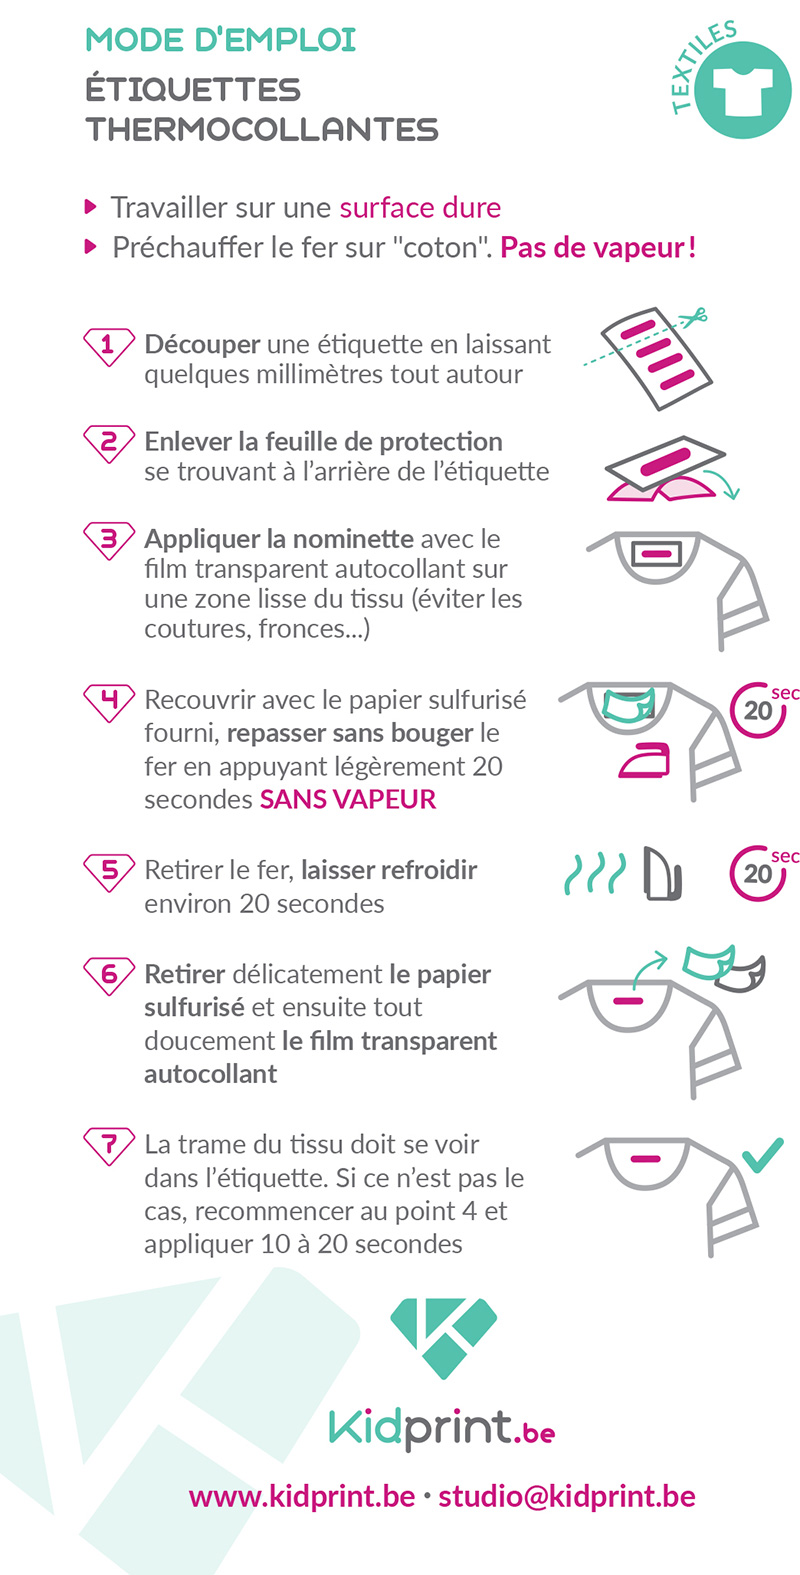 Kidprint-Mode-emploi-thermocollantes-2.j